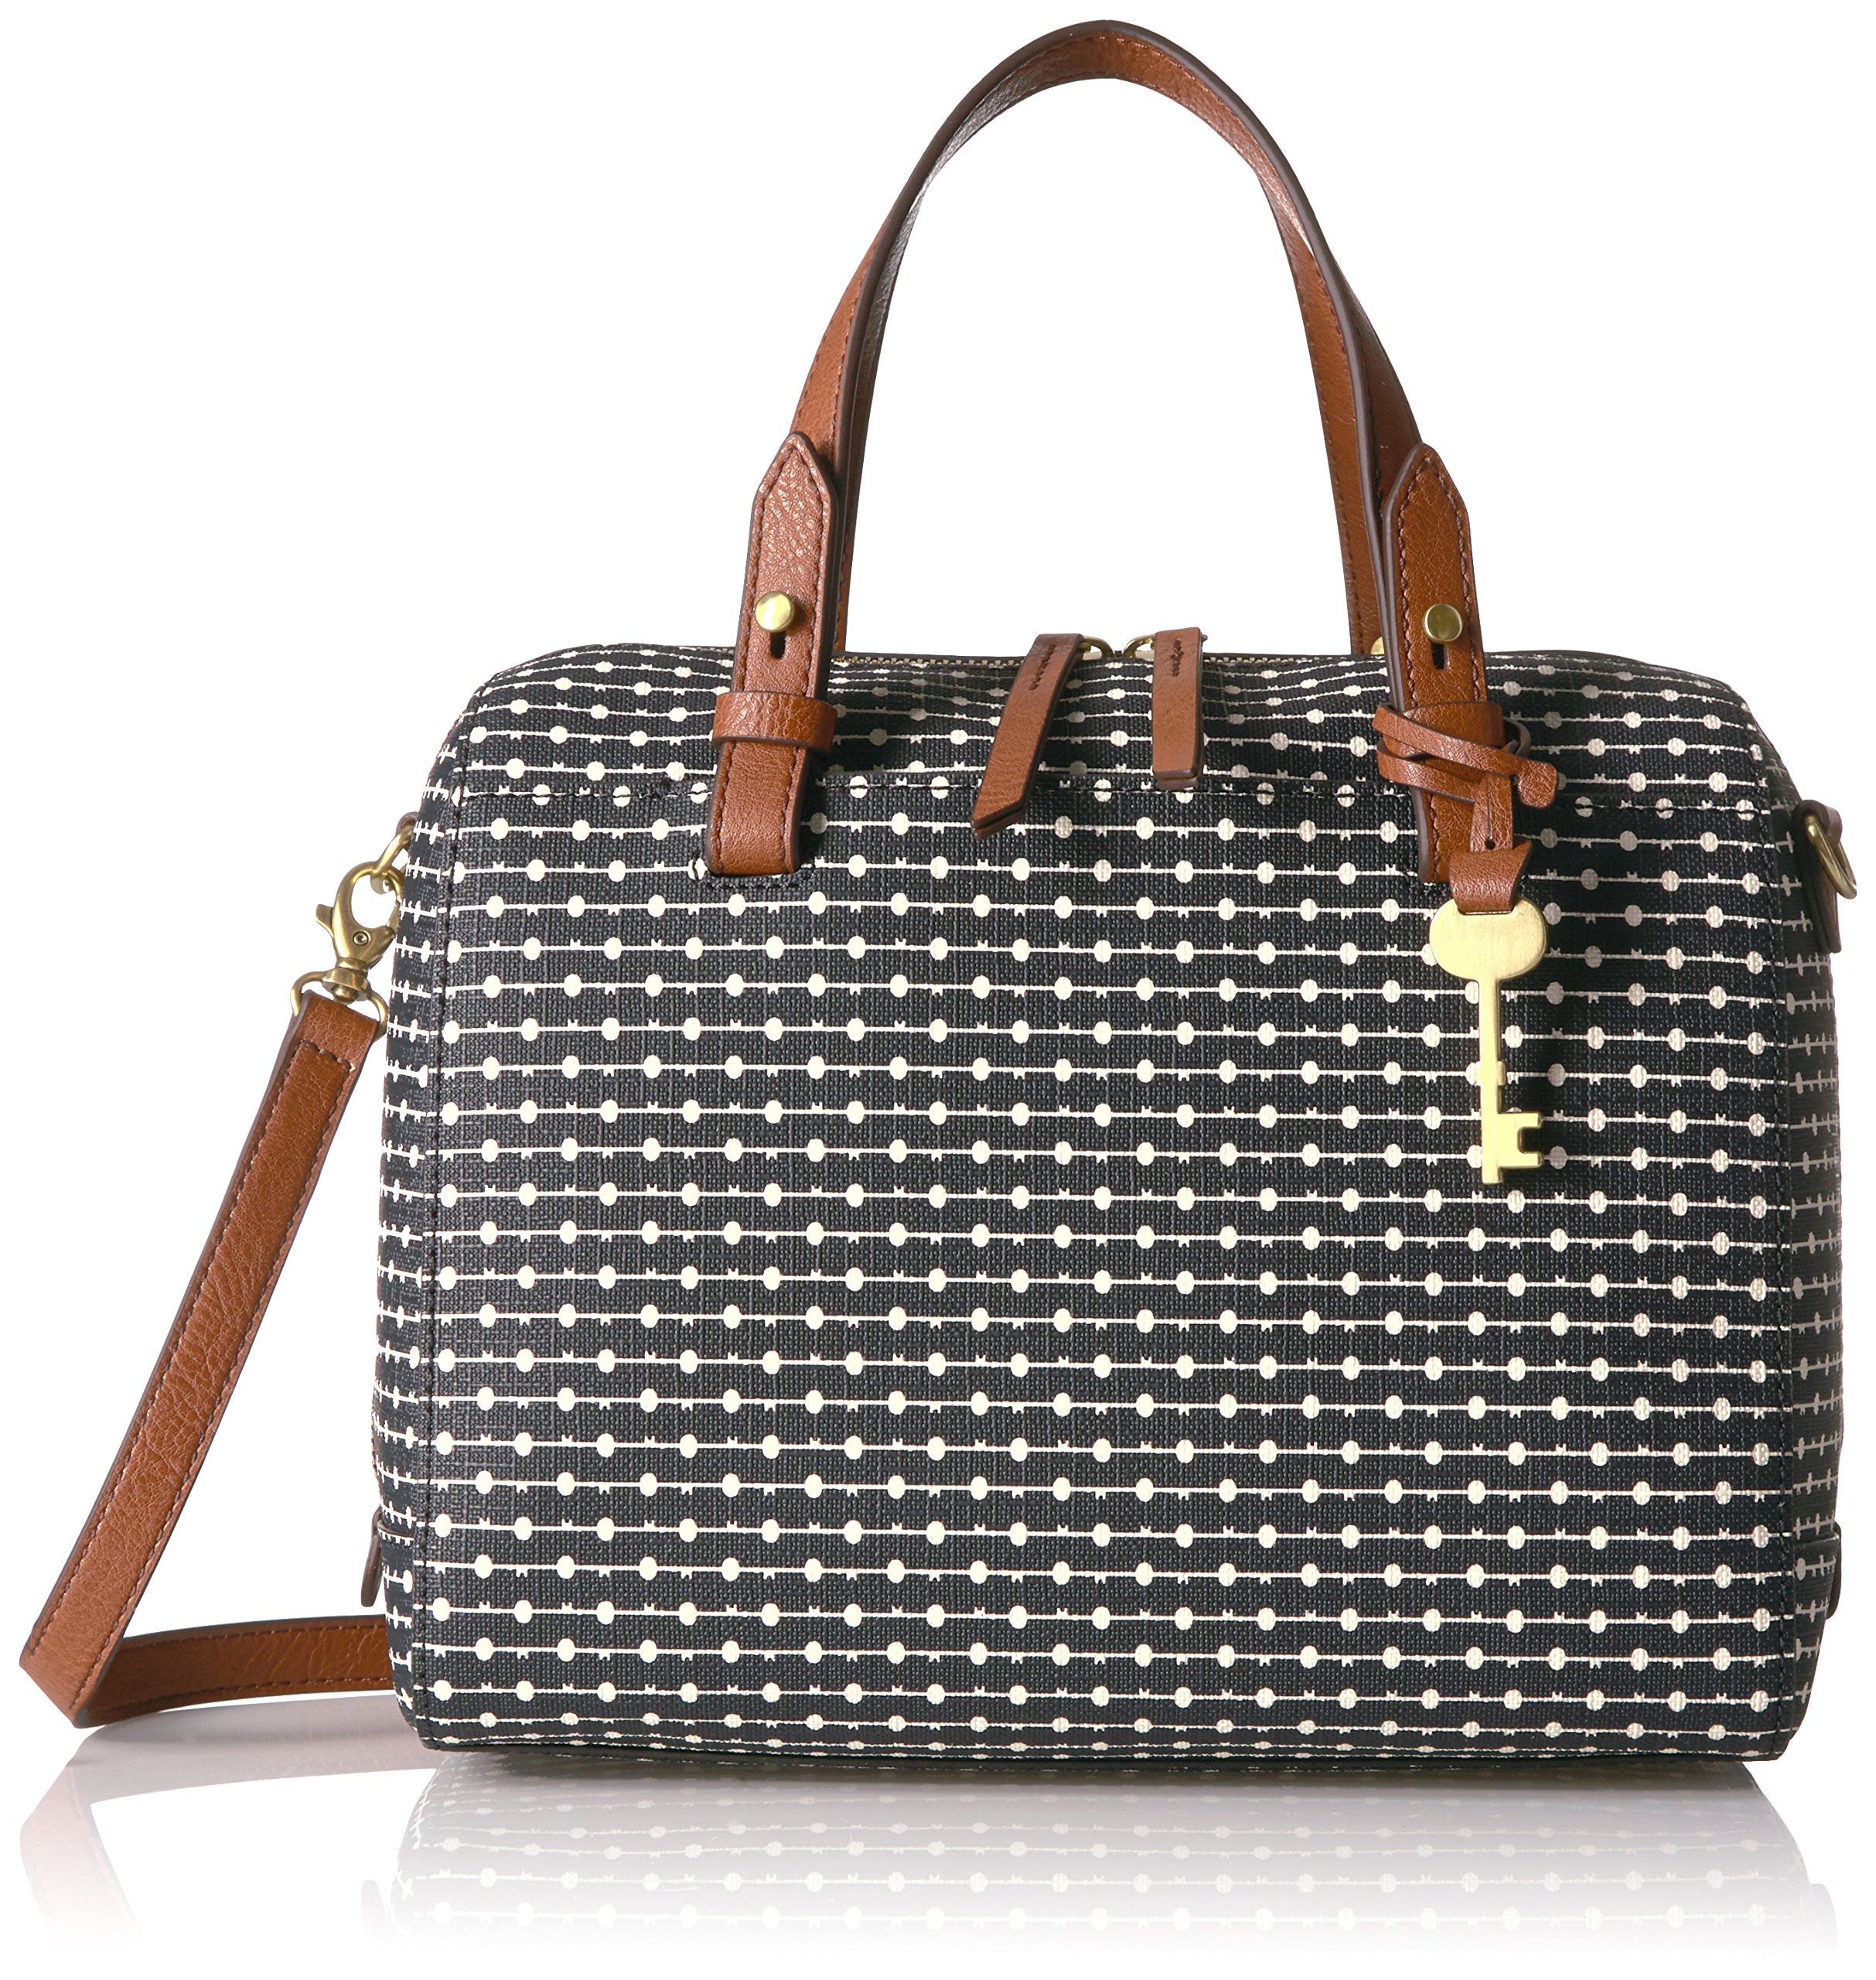 Fossil Rachel Satchel Handbag, Black Dot by Fossil (Image #1)